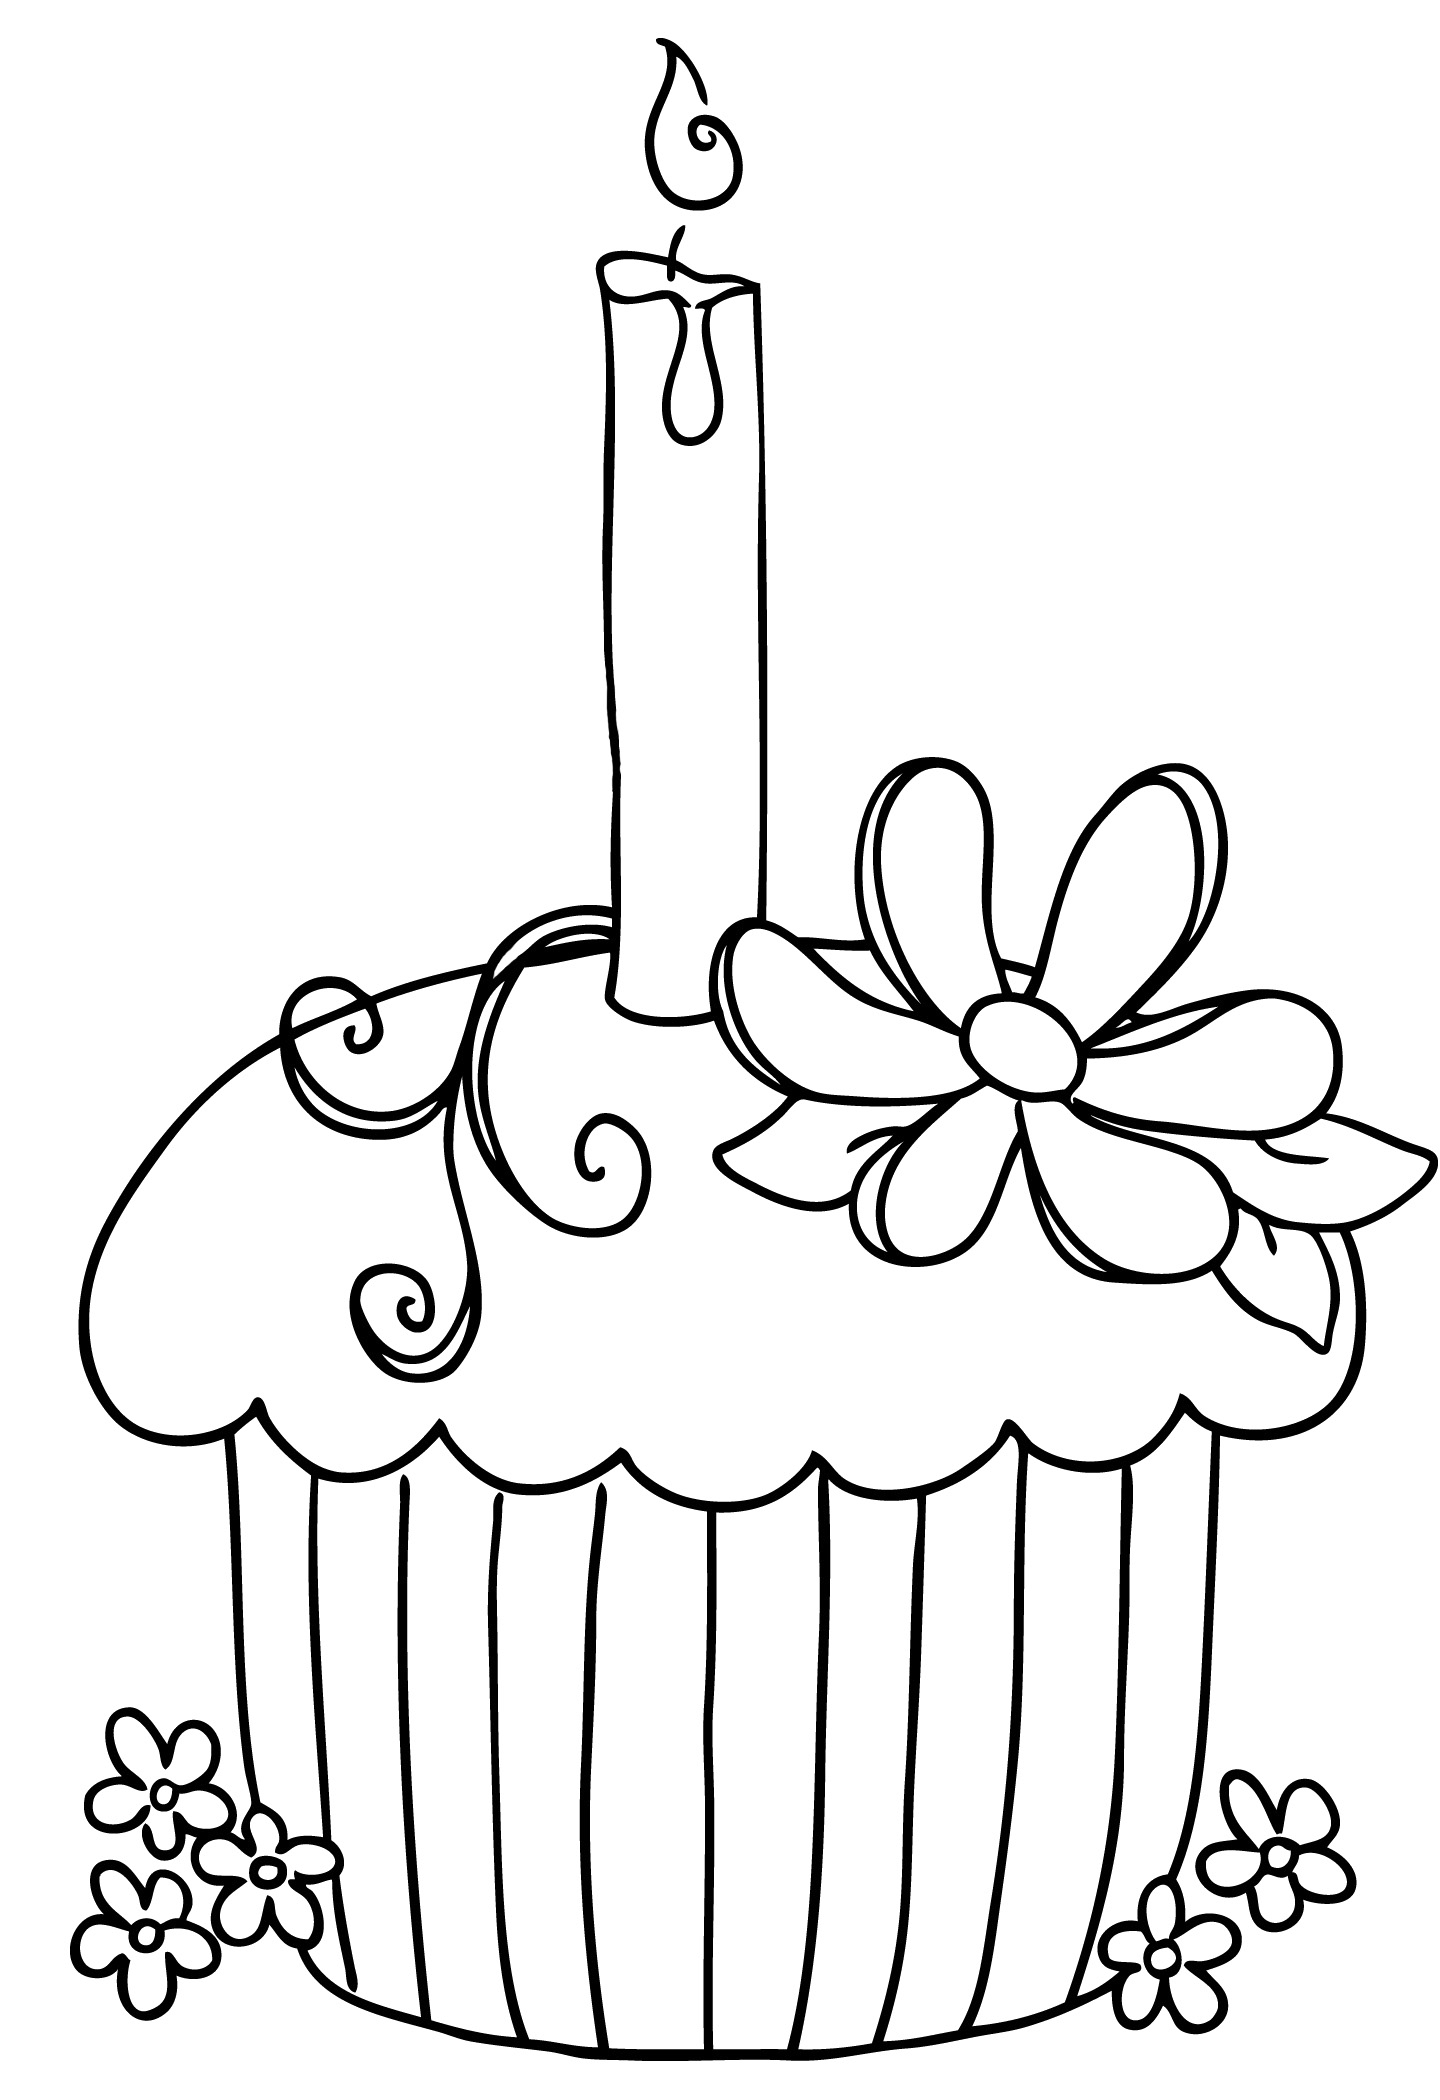 Cupcake 2 candles clipart black and white png transparent download Happy birthday black and white birthday black and white birthday ... png transparent download